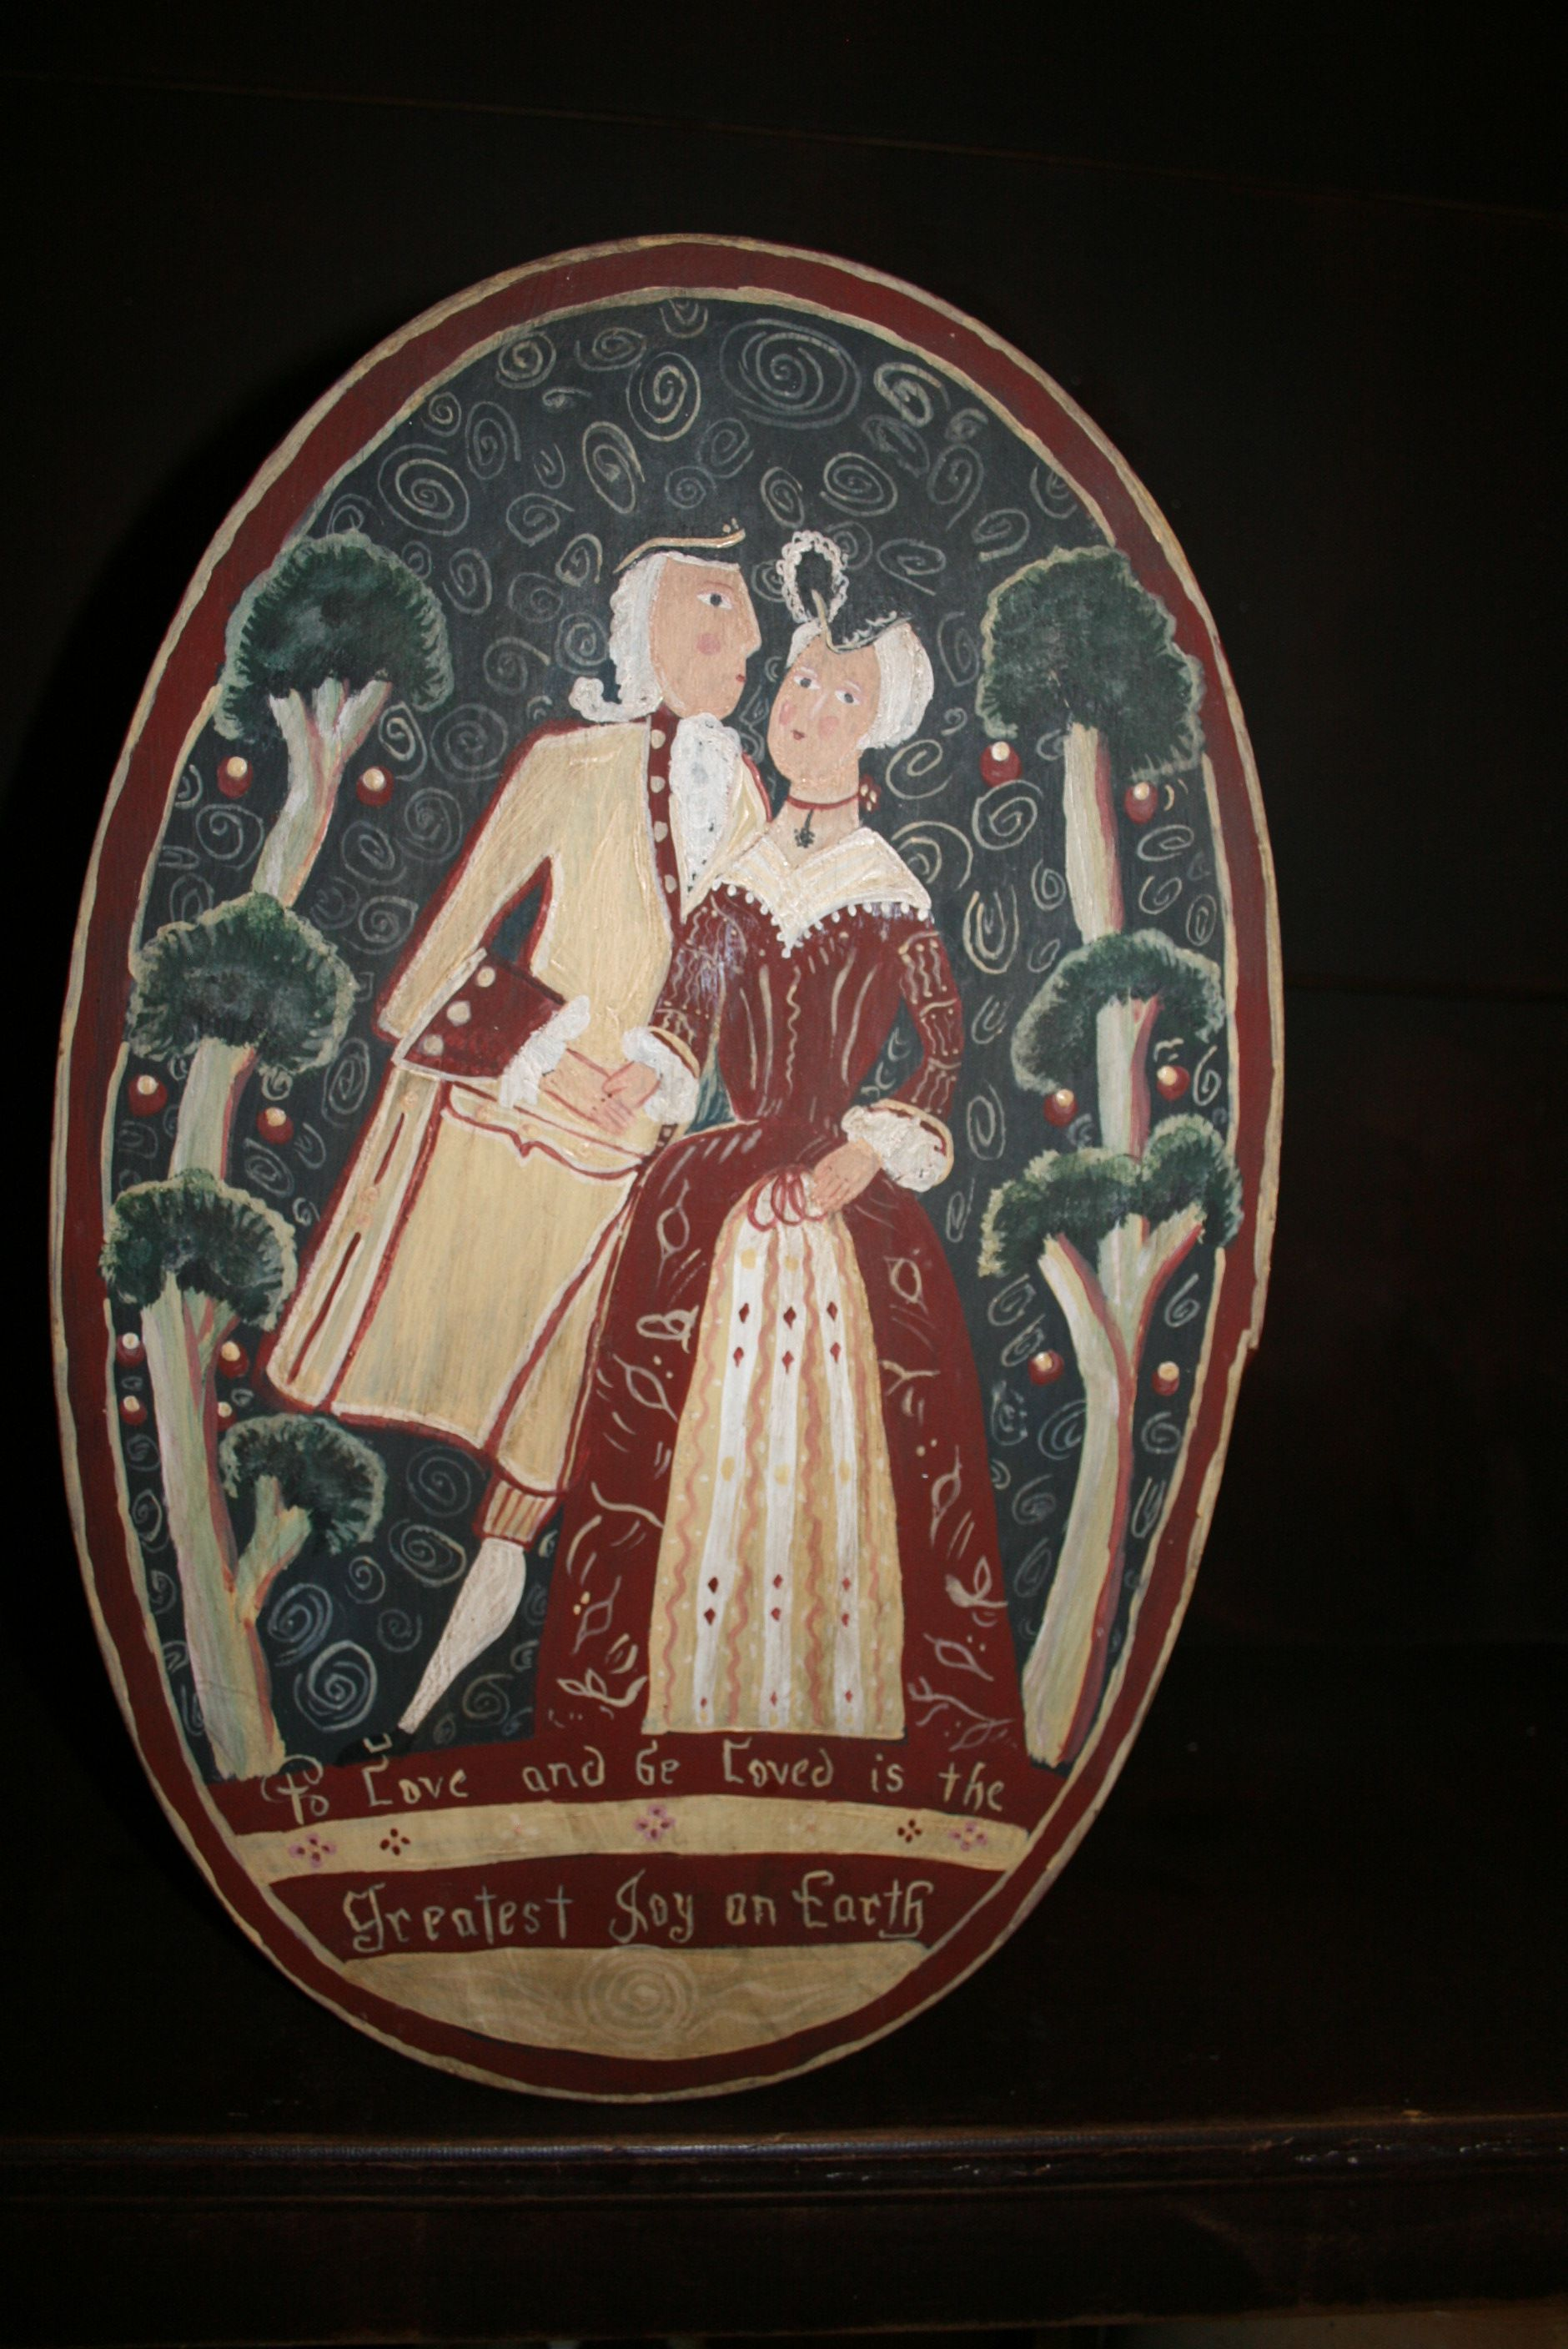 Bride S Box That I Painted By Looking At A Picture From